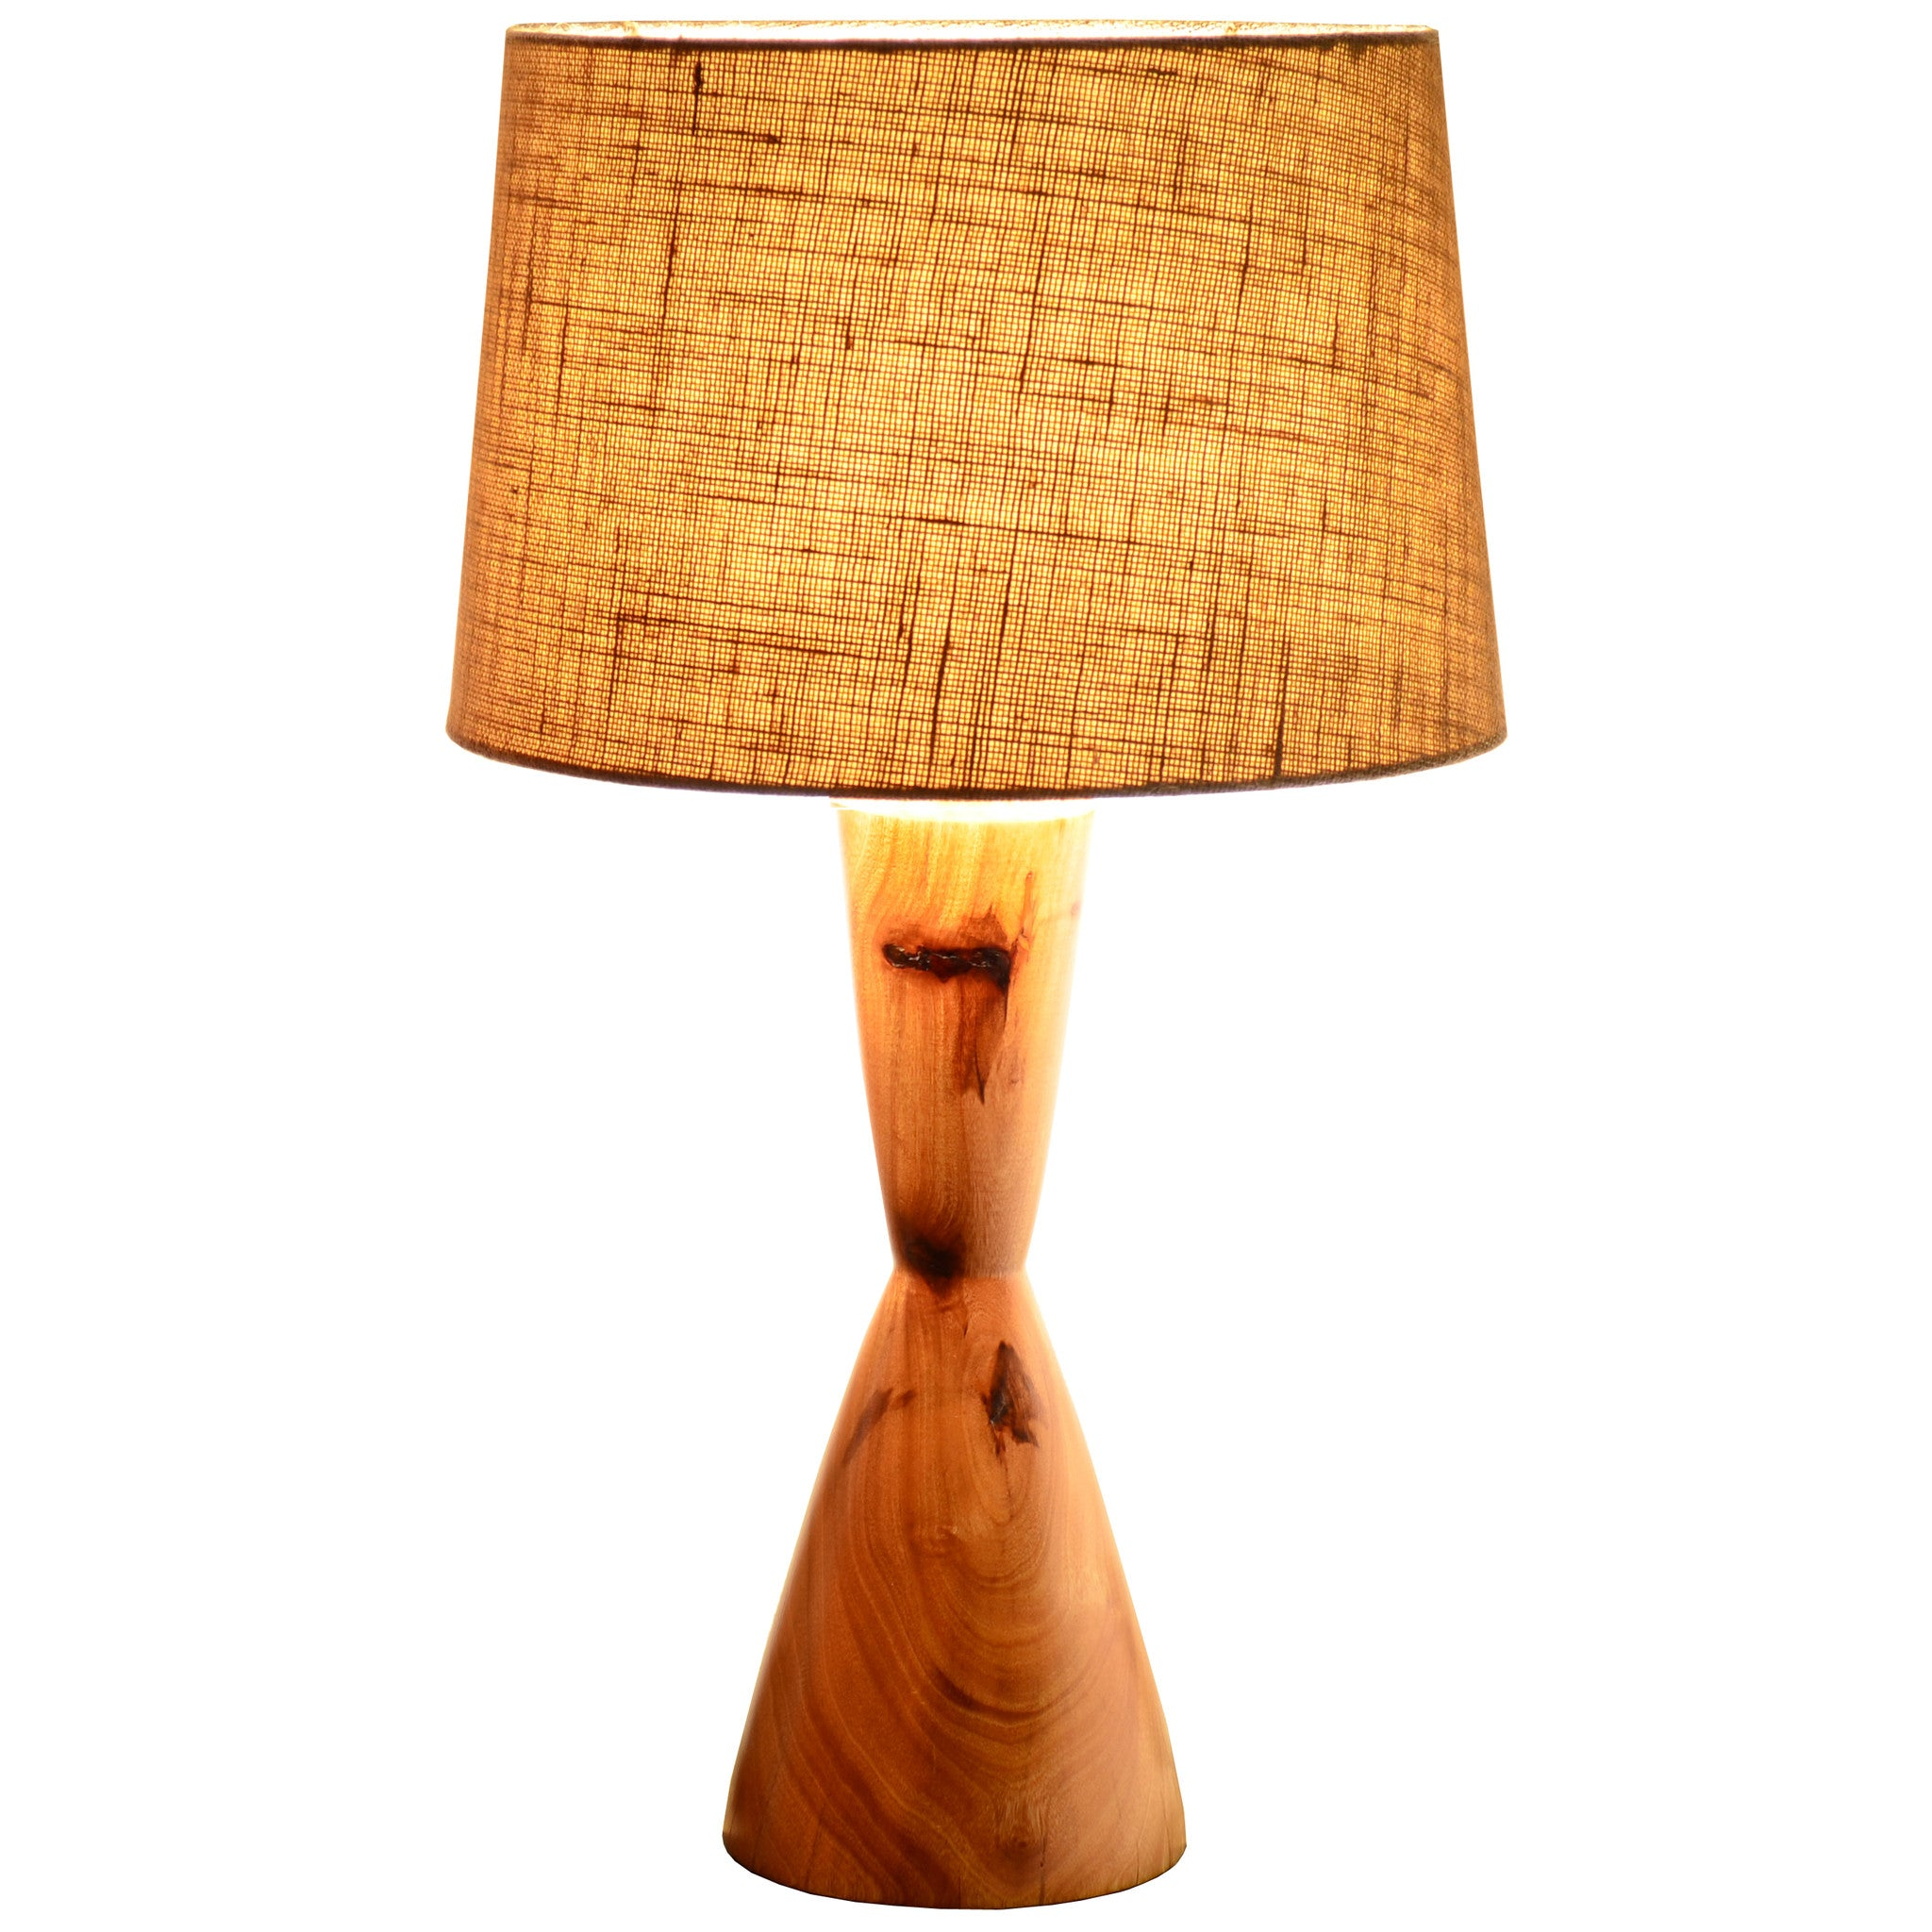 Wood Turned Mid Century Modern Table Lamp   Hourglass Natural